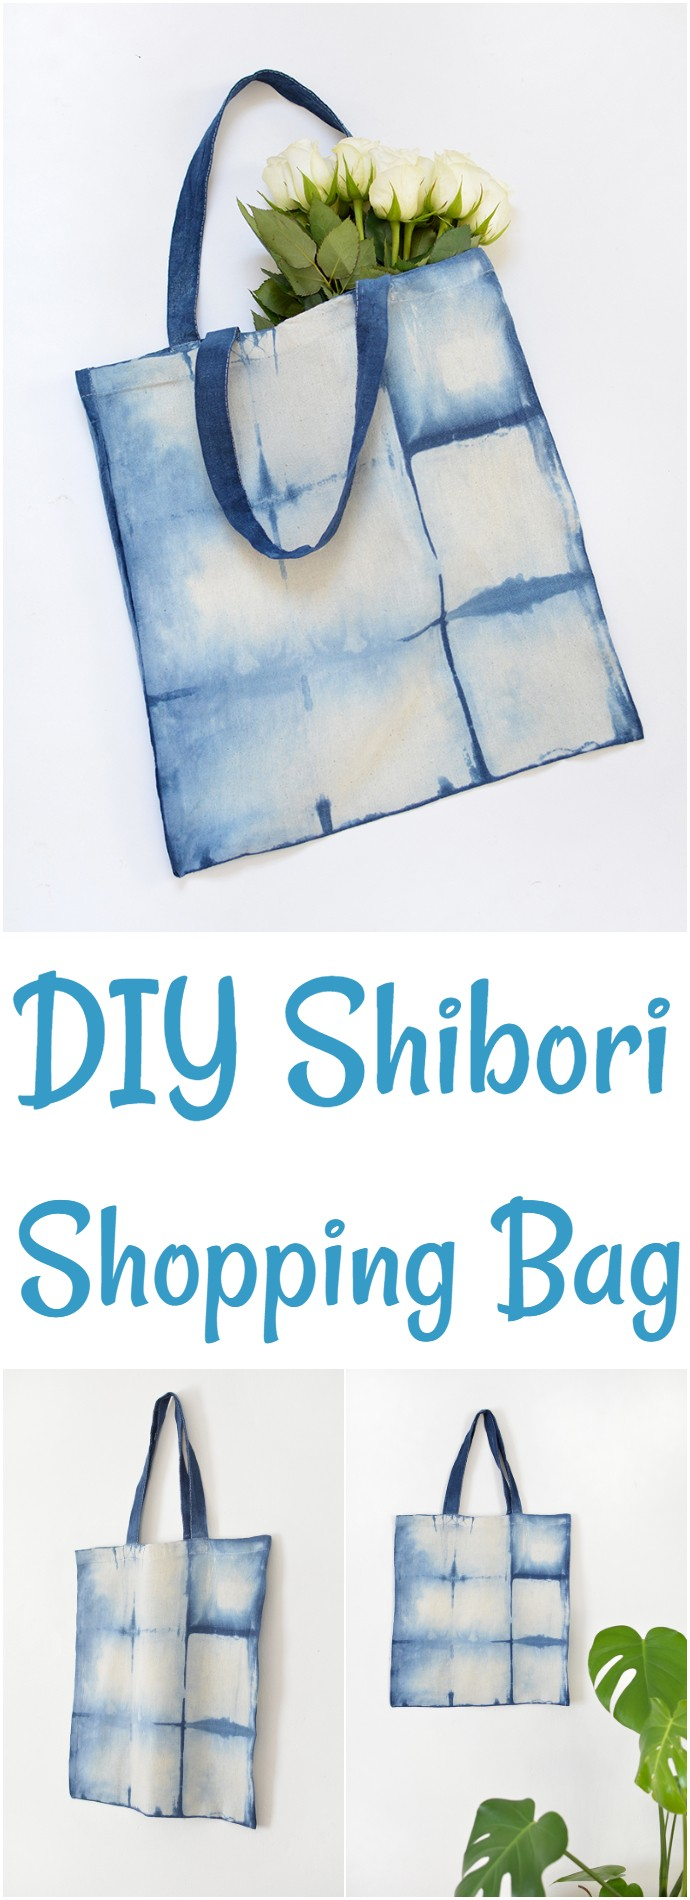 DIY Shibori Shopping Bag